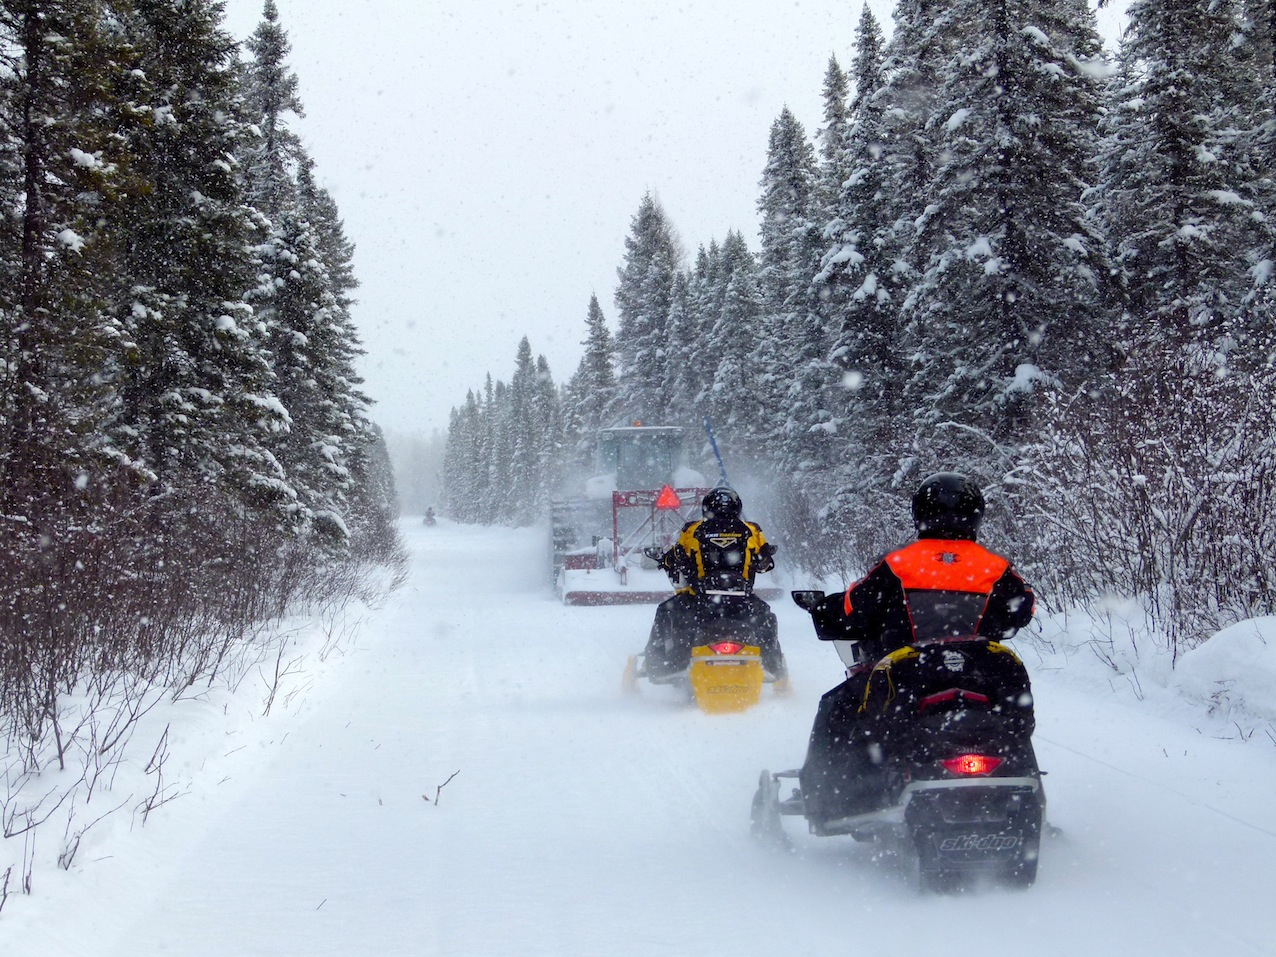 Riding frequently groomed trails in the Northern Corridor snowmobiling